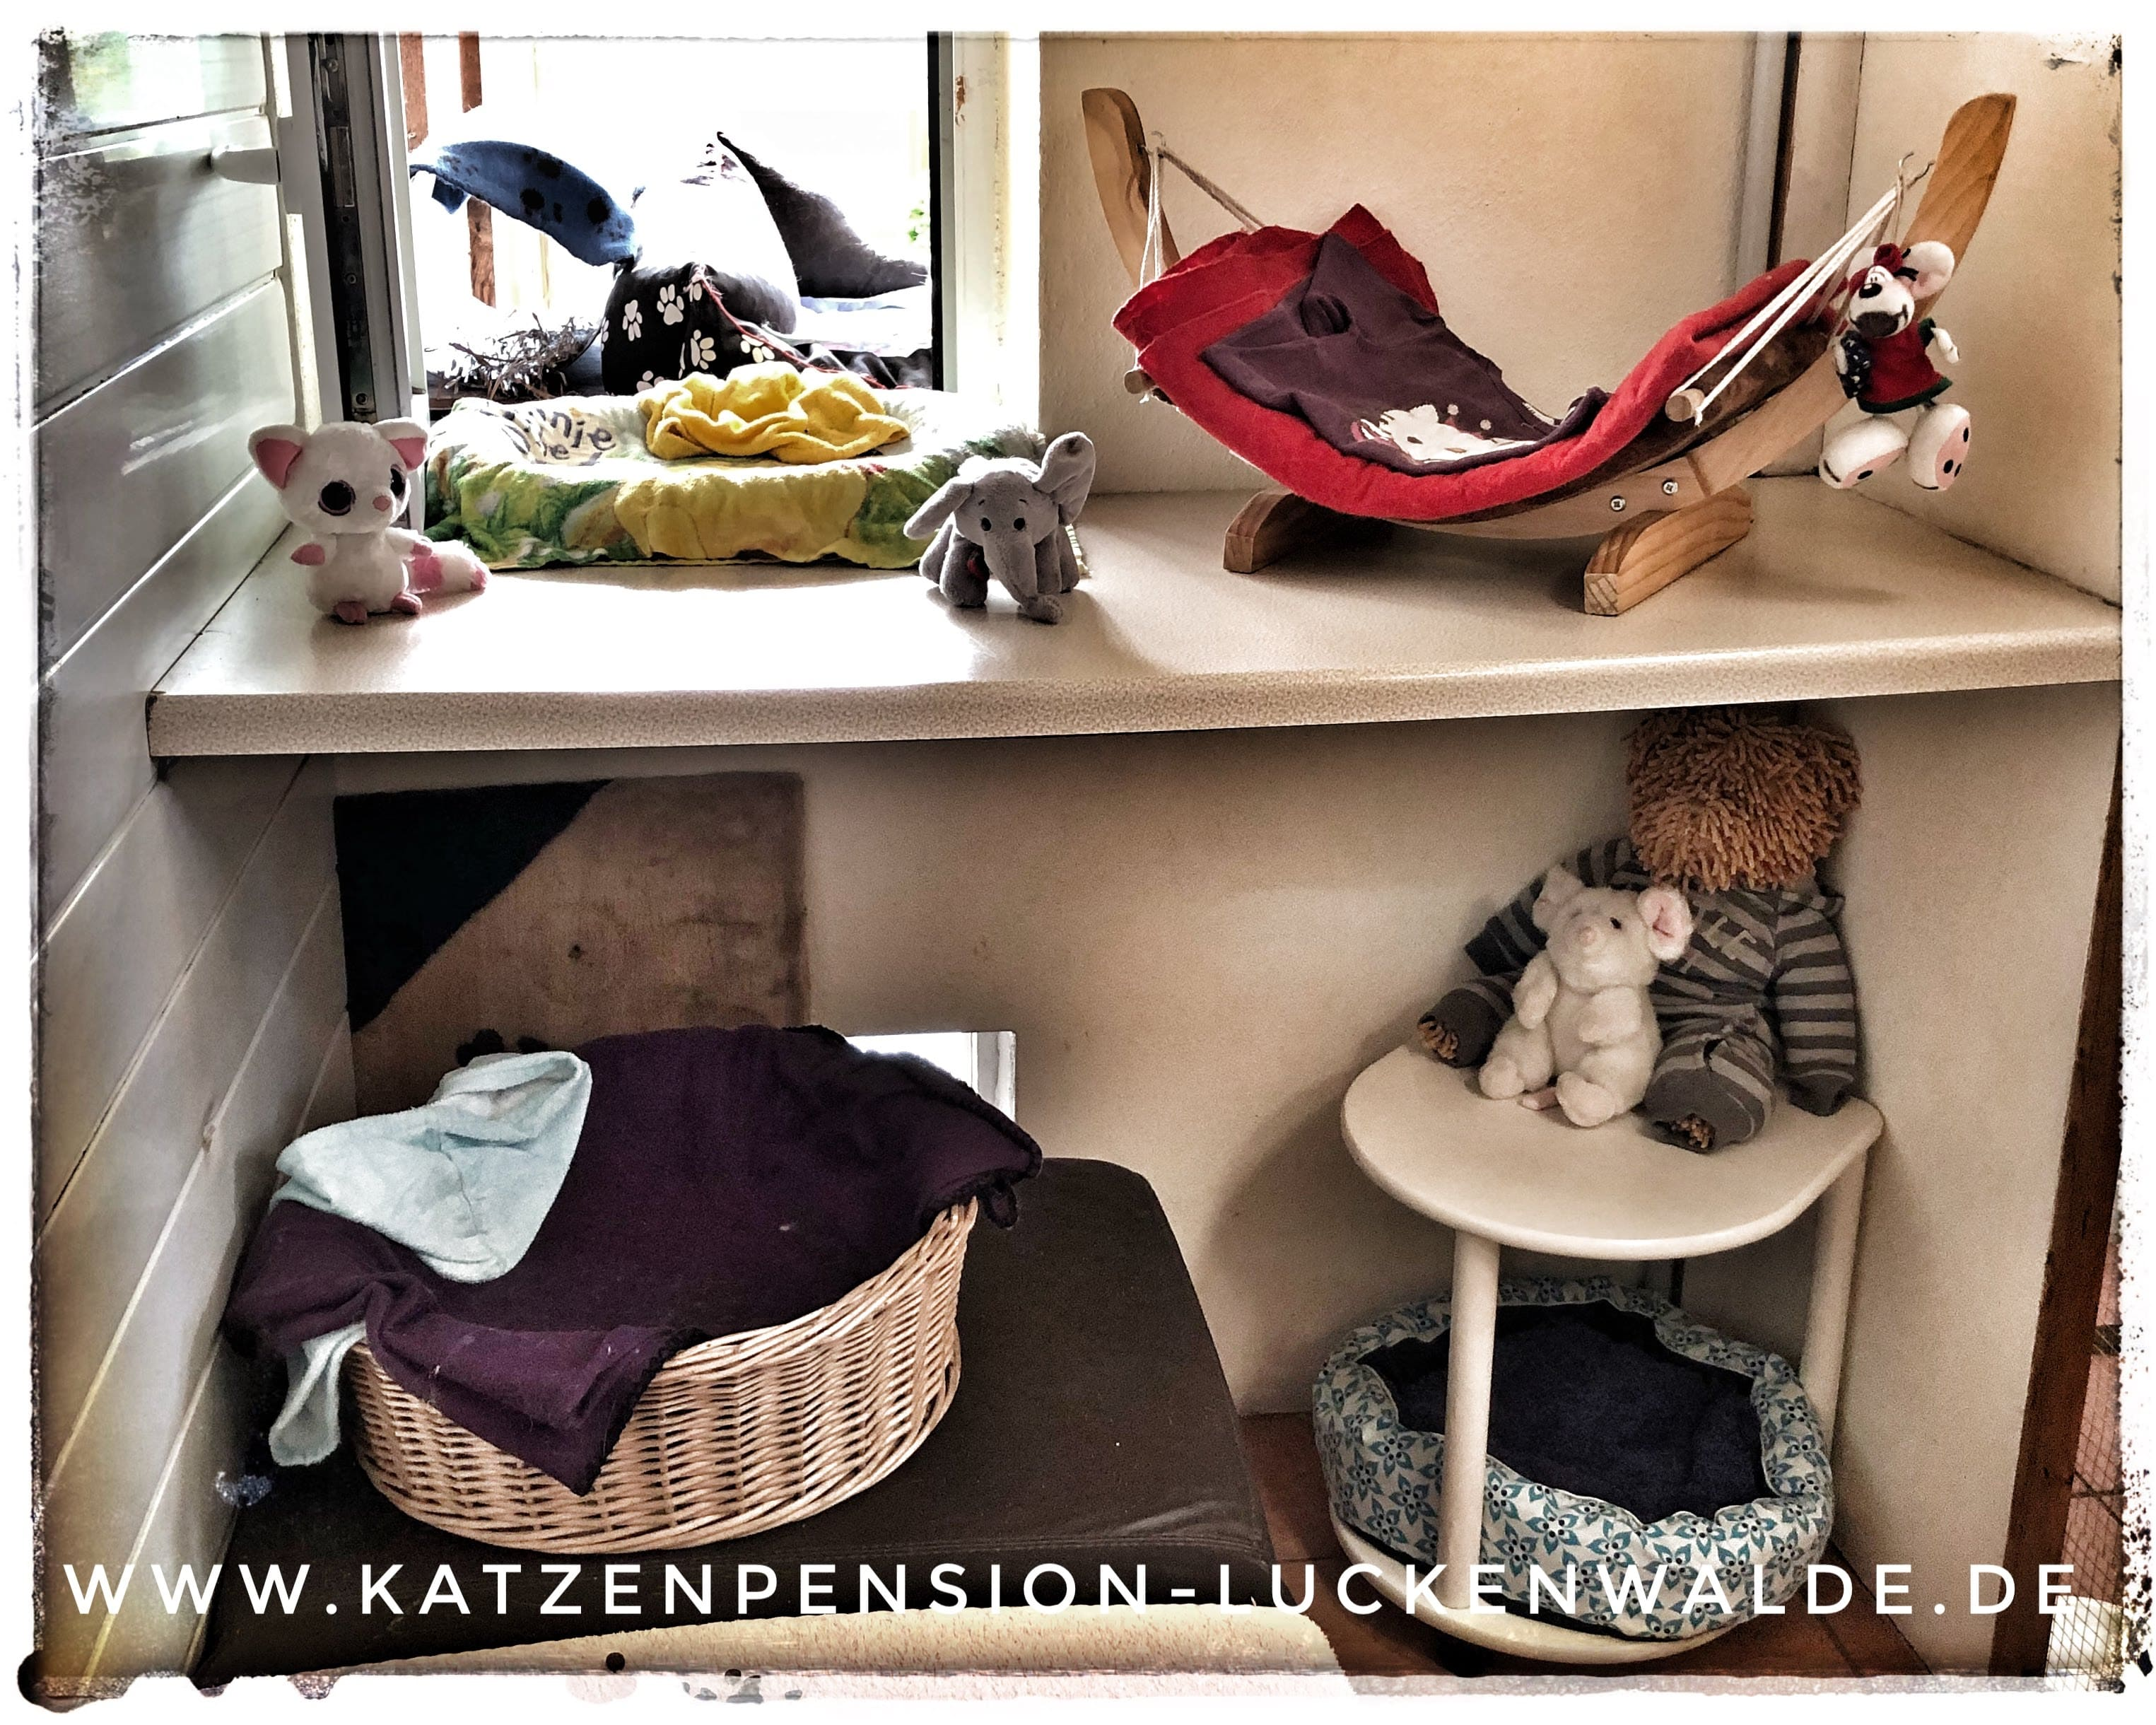 ####h1### - IMG 9522 min - Katzenpension - Tierpension - Tierbetreuung